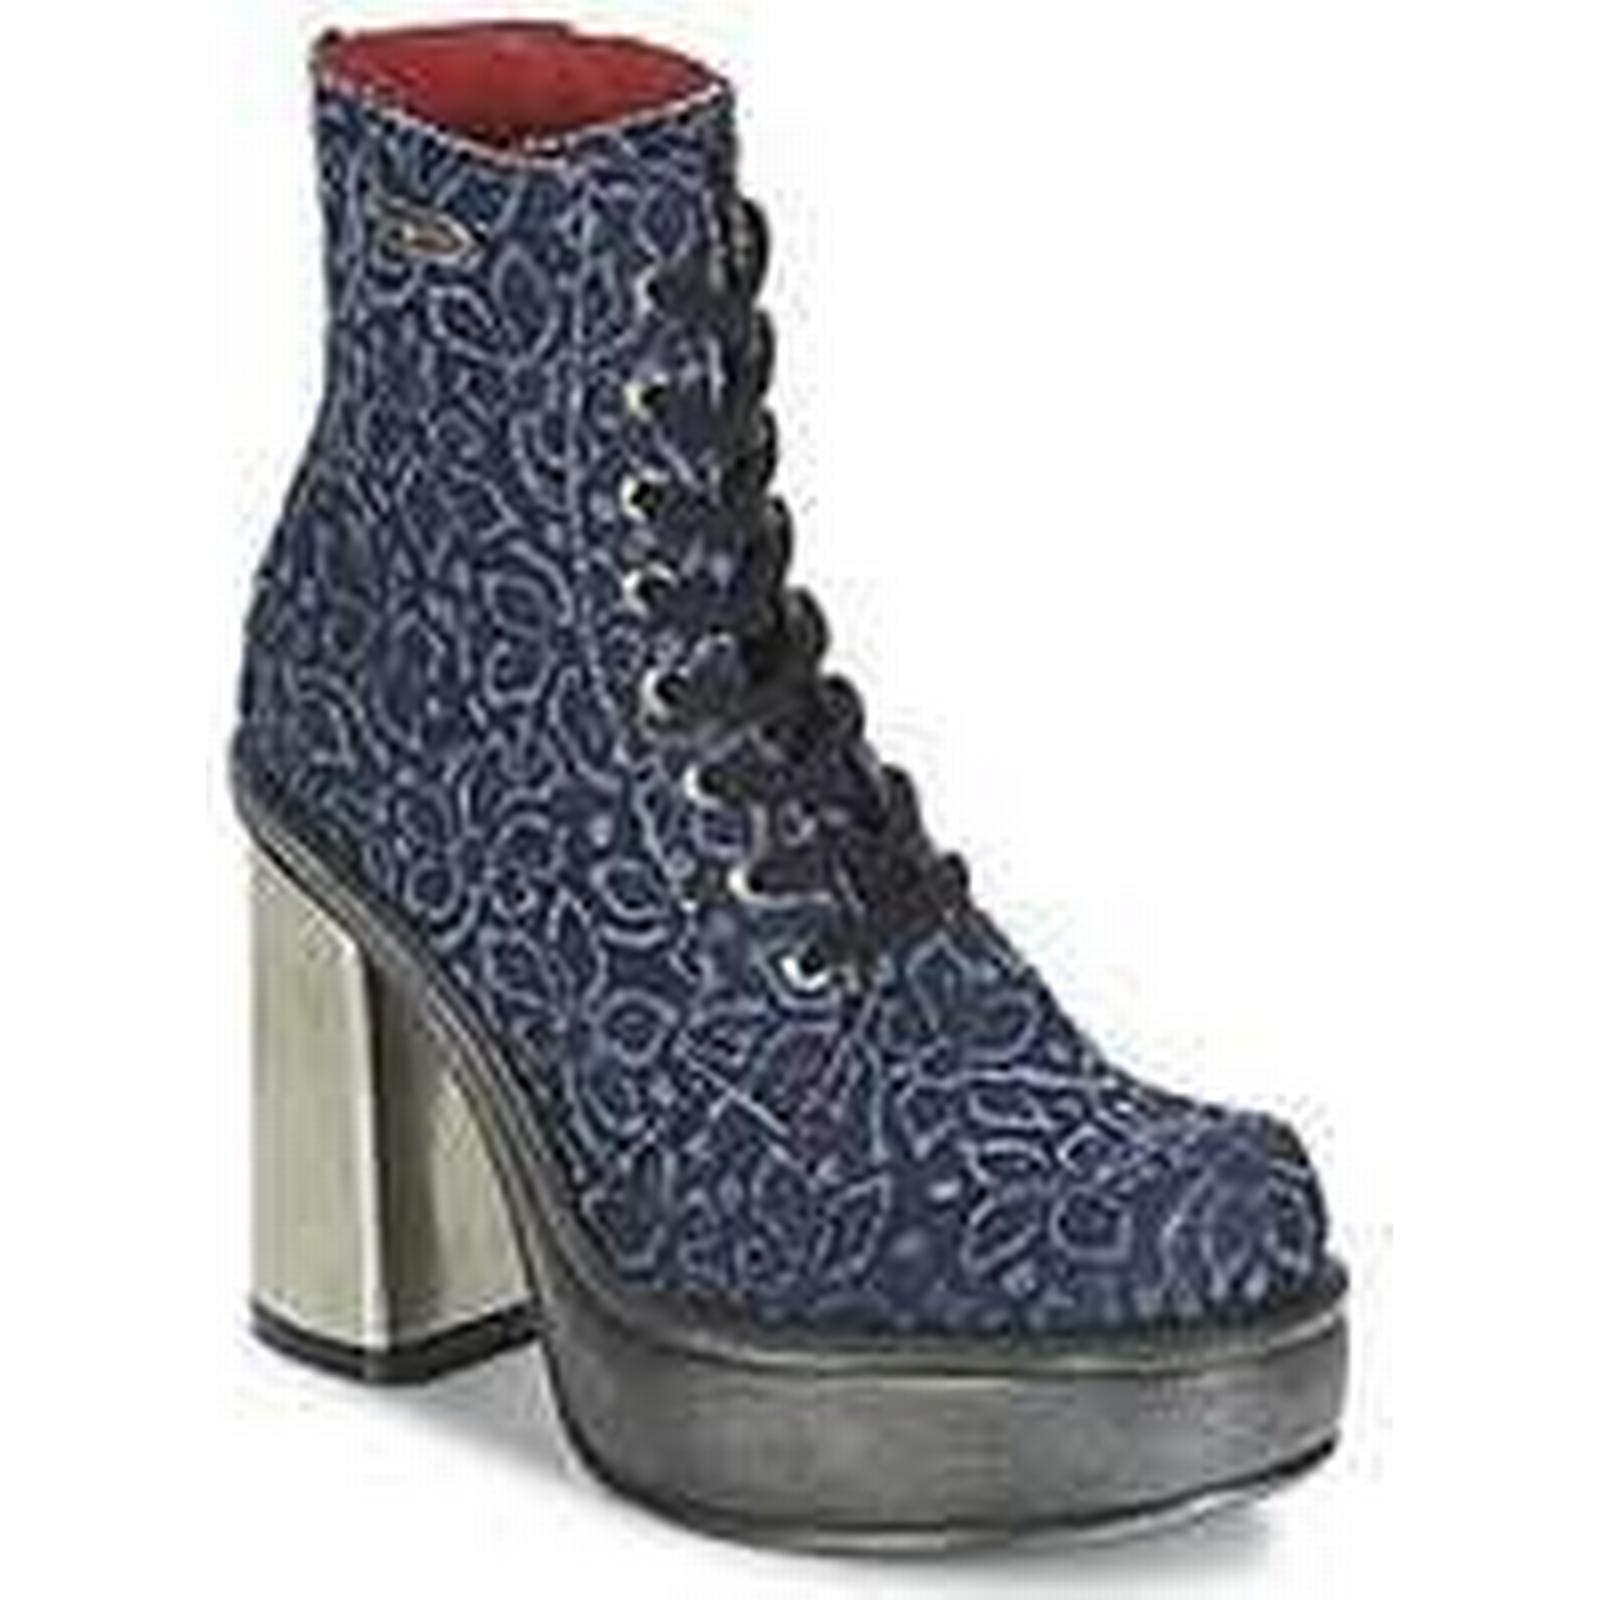 Spartoo.co.uk New Ankle Rock BOSTA women's Low Ankle New Boots in Blue d11911